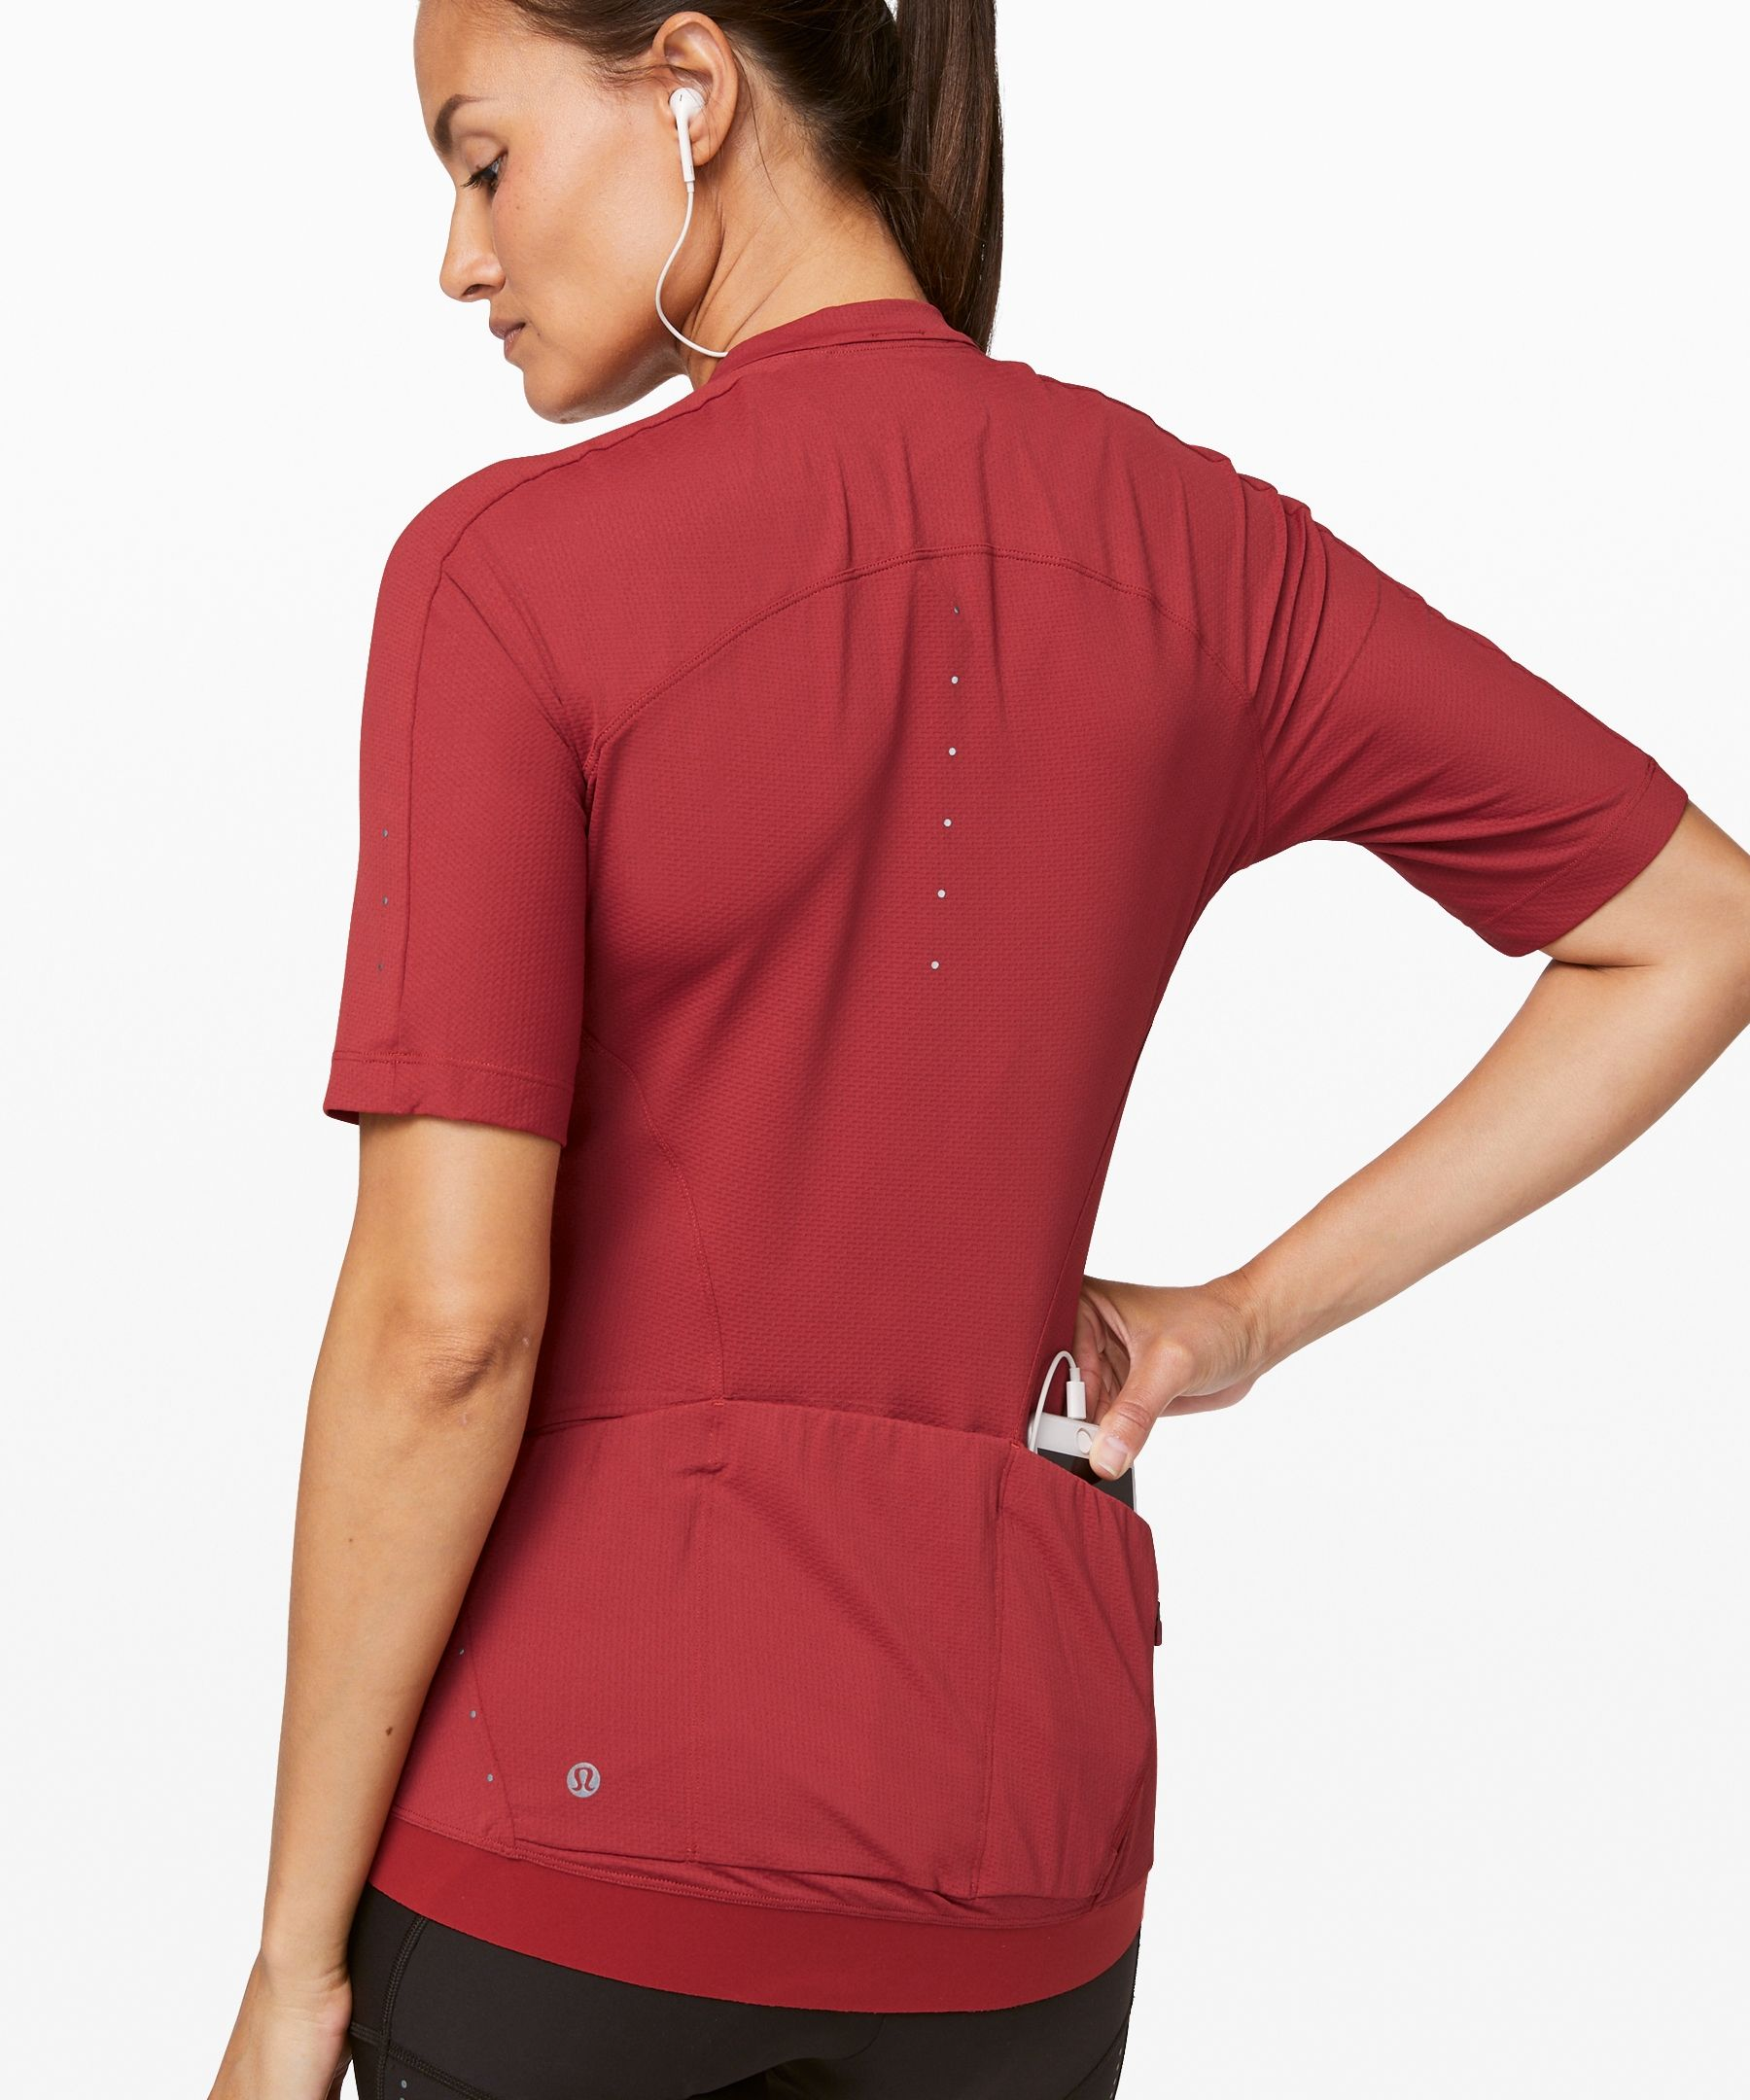 City To Summit Cycling Jersey Ad Aff Summit City Jersey Cycling In 2020 Short Sleeve Tops Women Lululemon Women Windproof Jacket